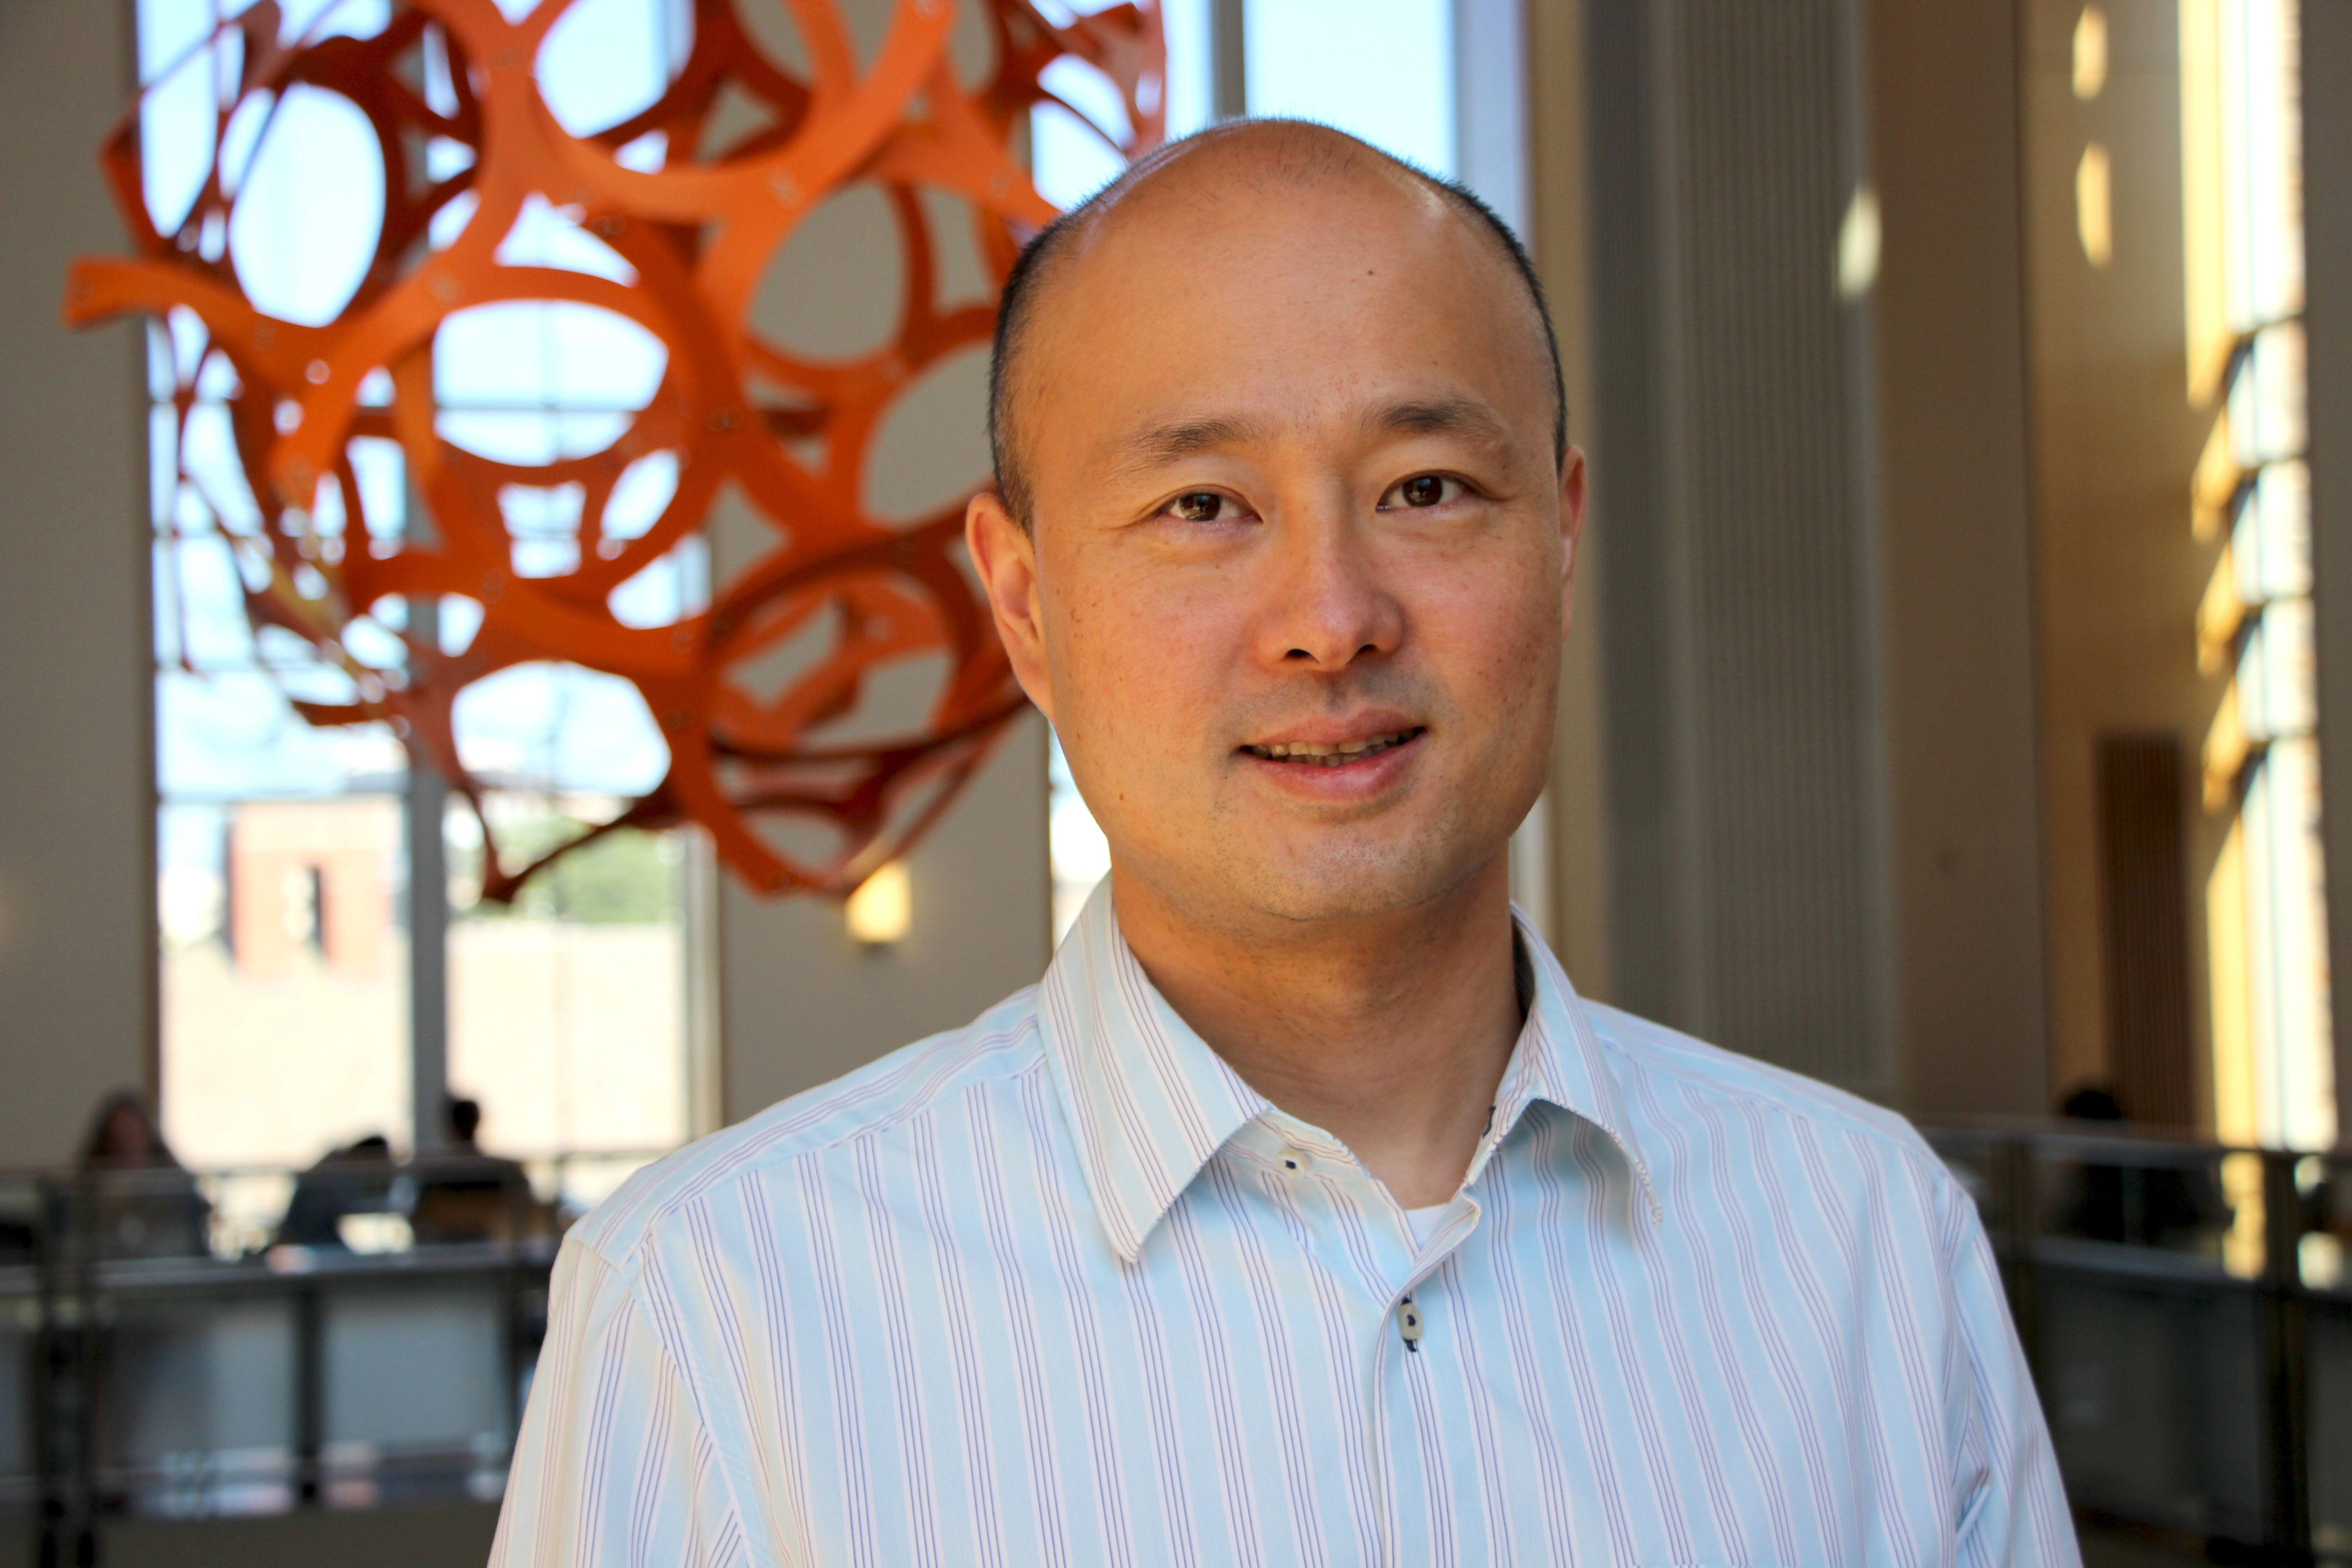 Xiling Shen, director of the Woo Center for Big Data and Precision Medicine